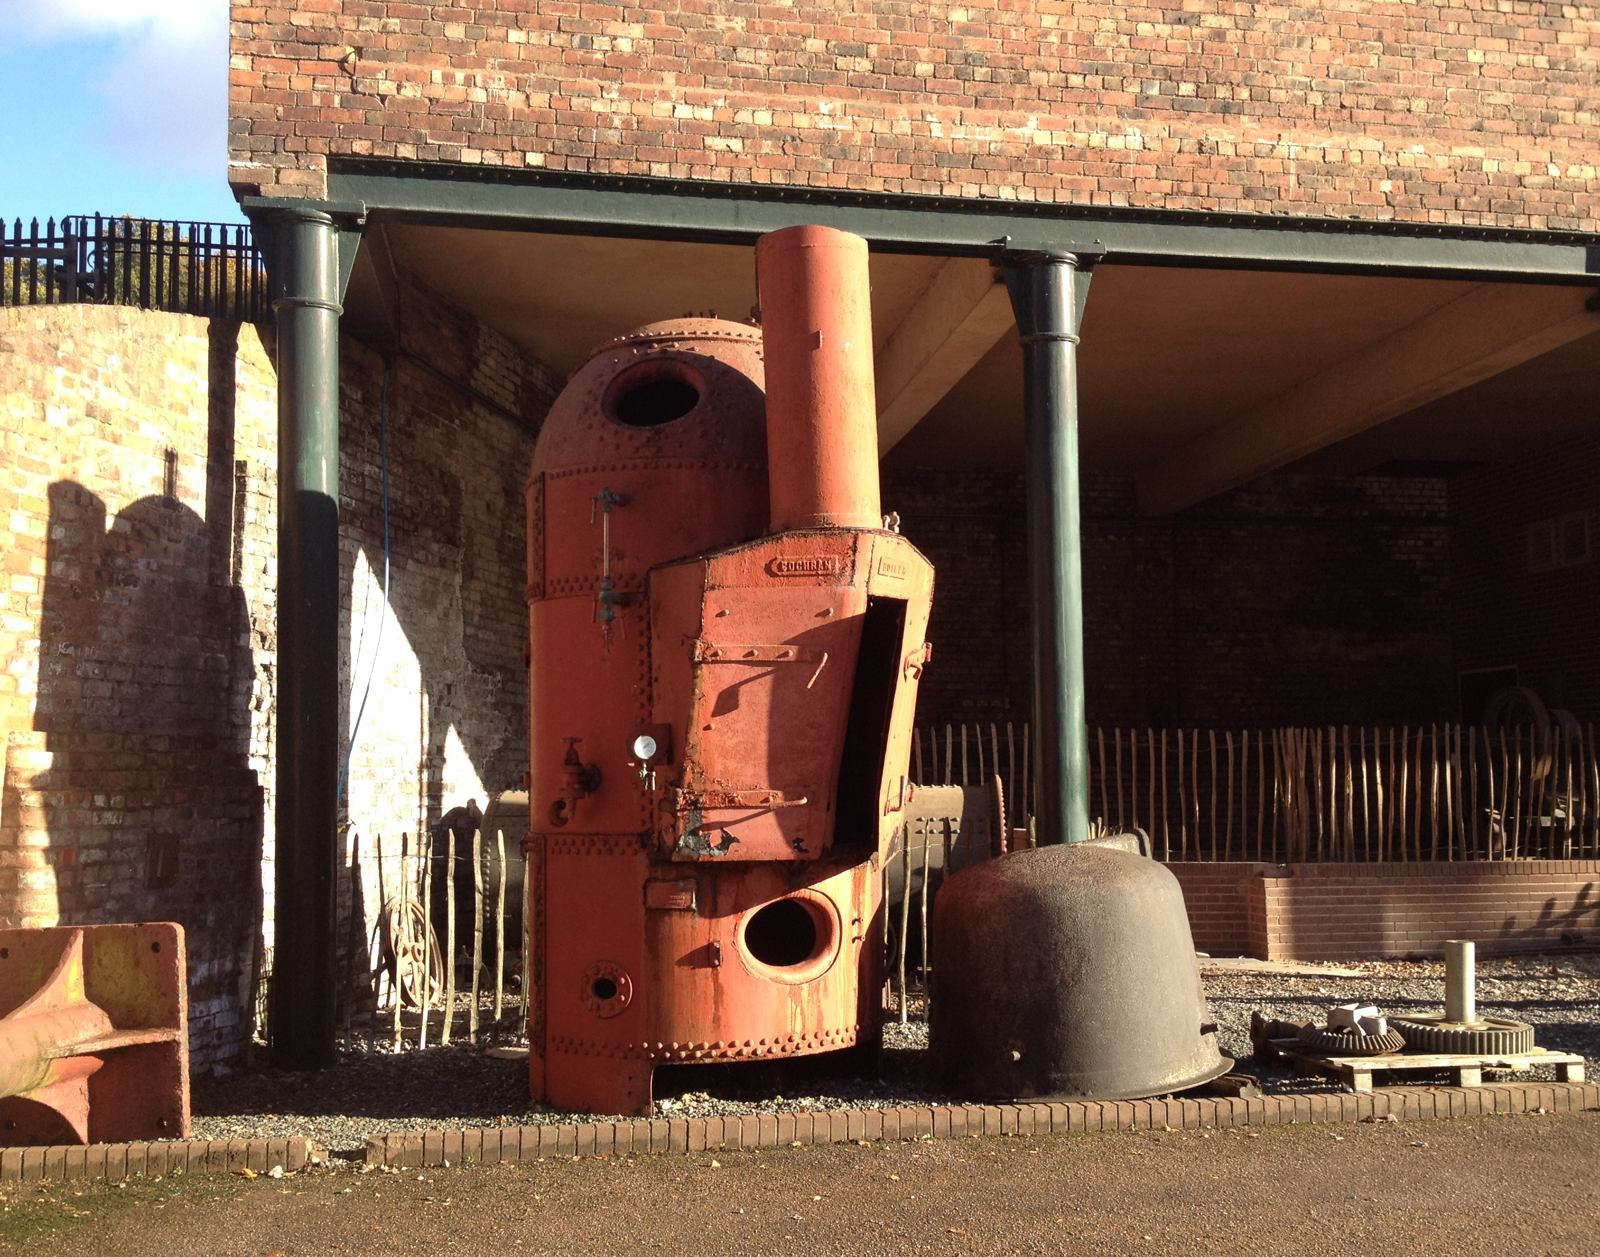 A big rusty orange boiler alongside other bits of old machinery